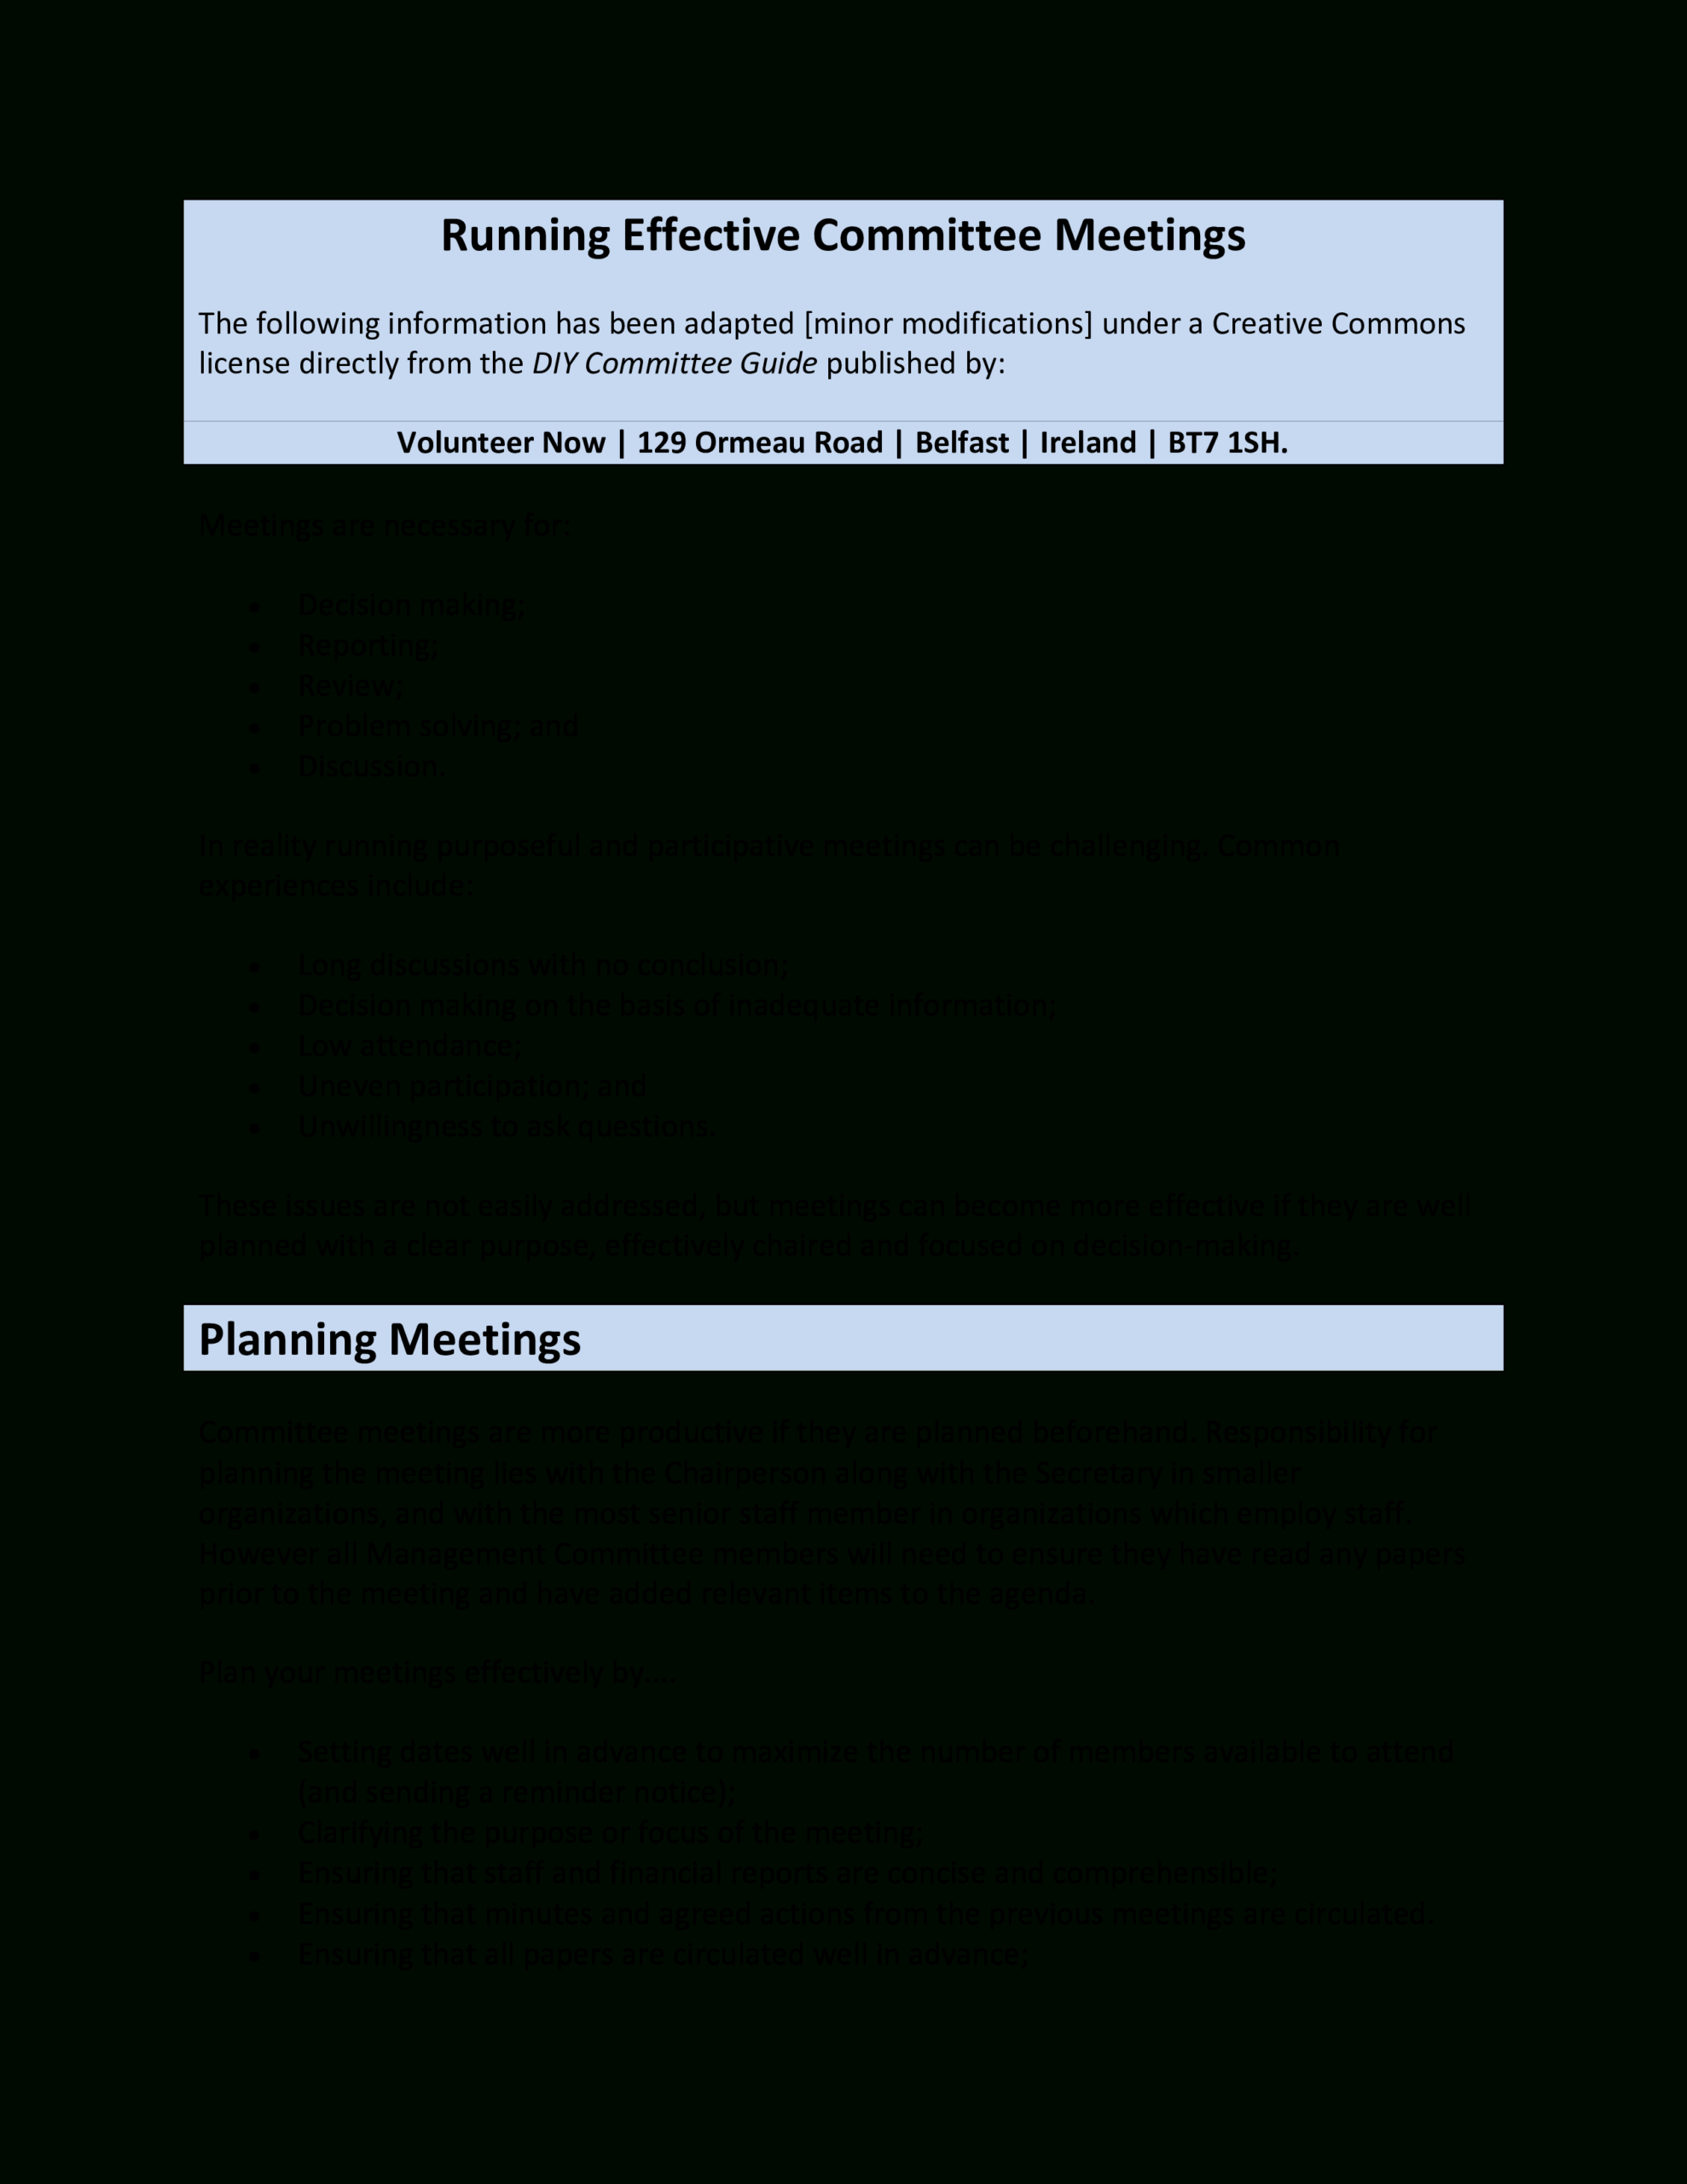 Sample Running Effective Committee Meeting Agenda With Committee Meeting Agenda Template